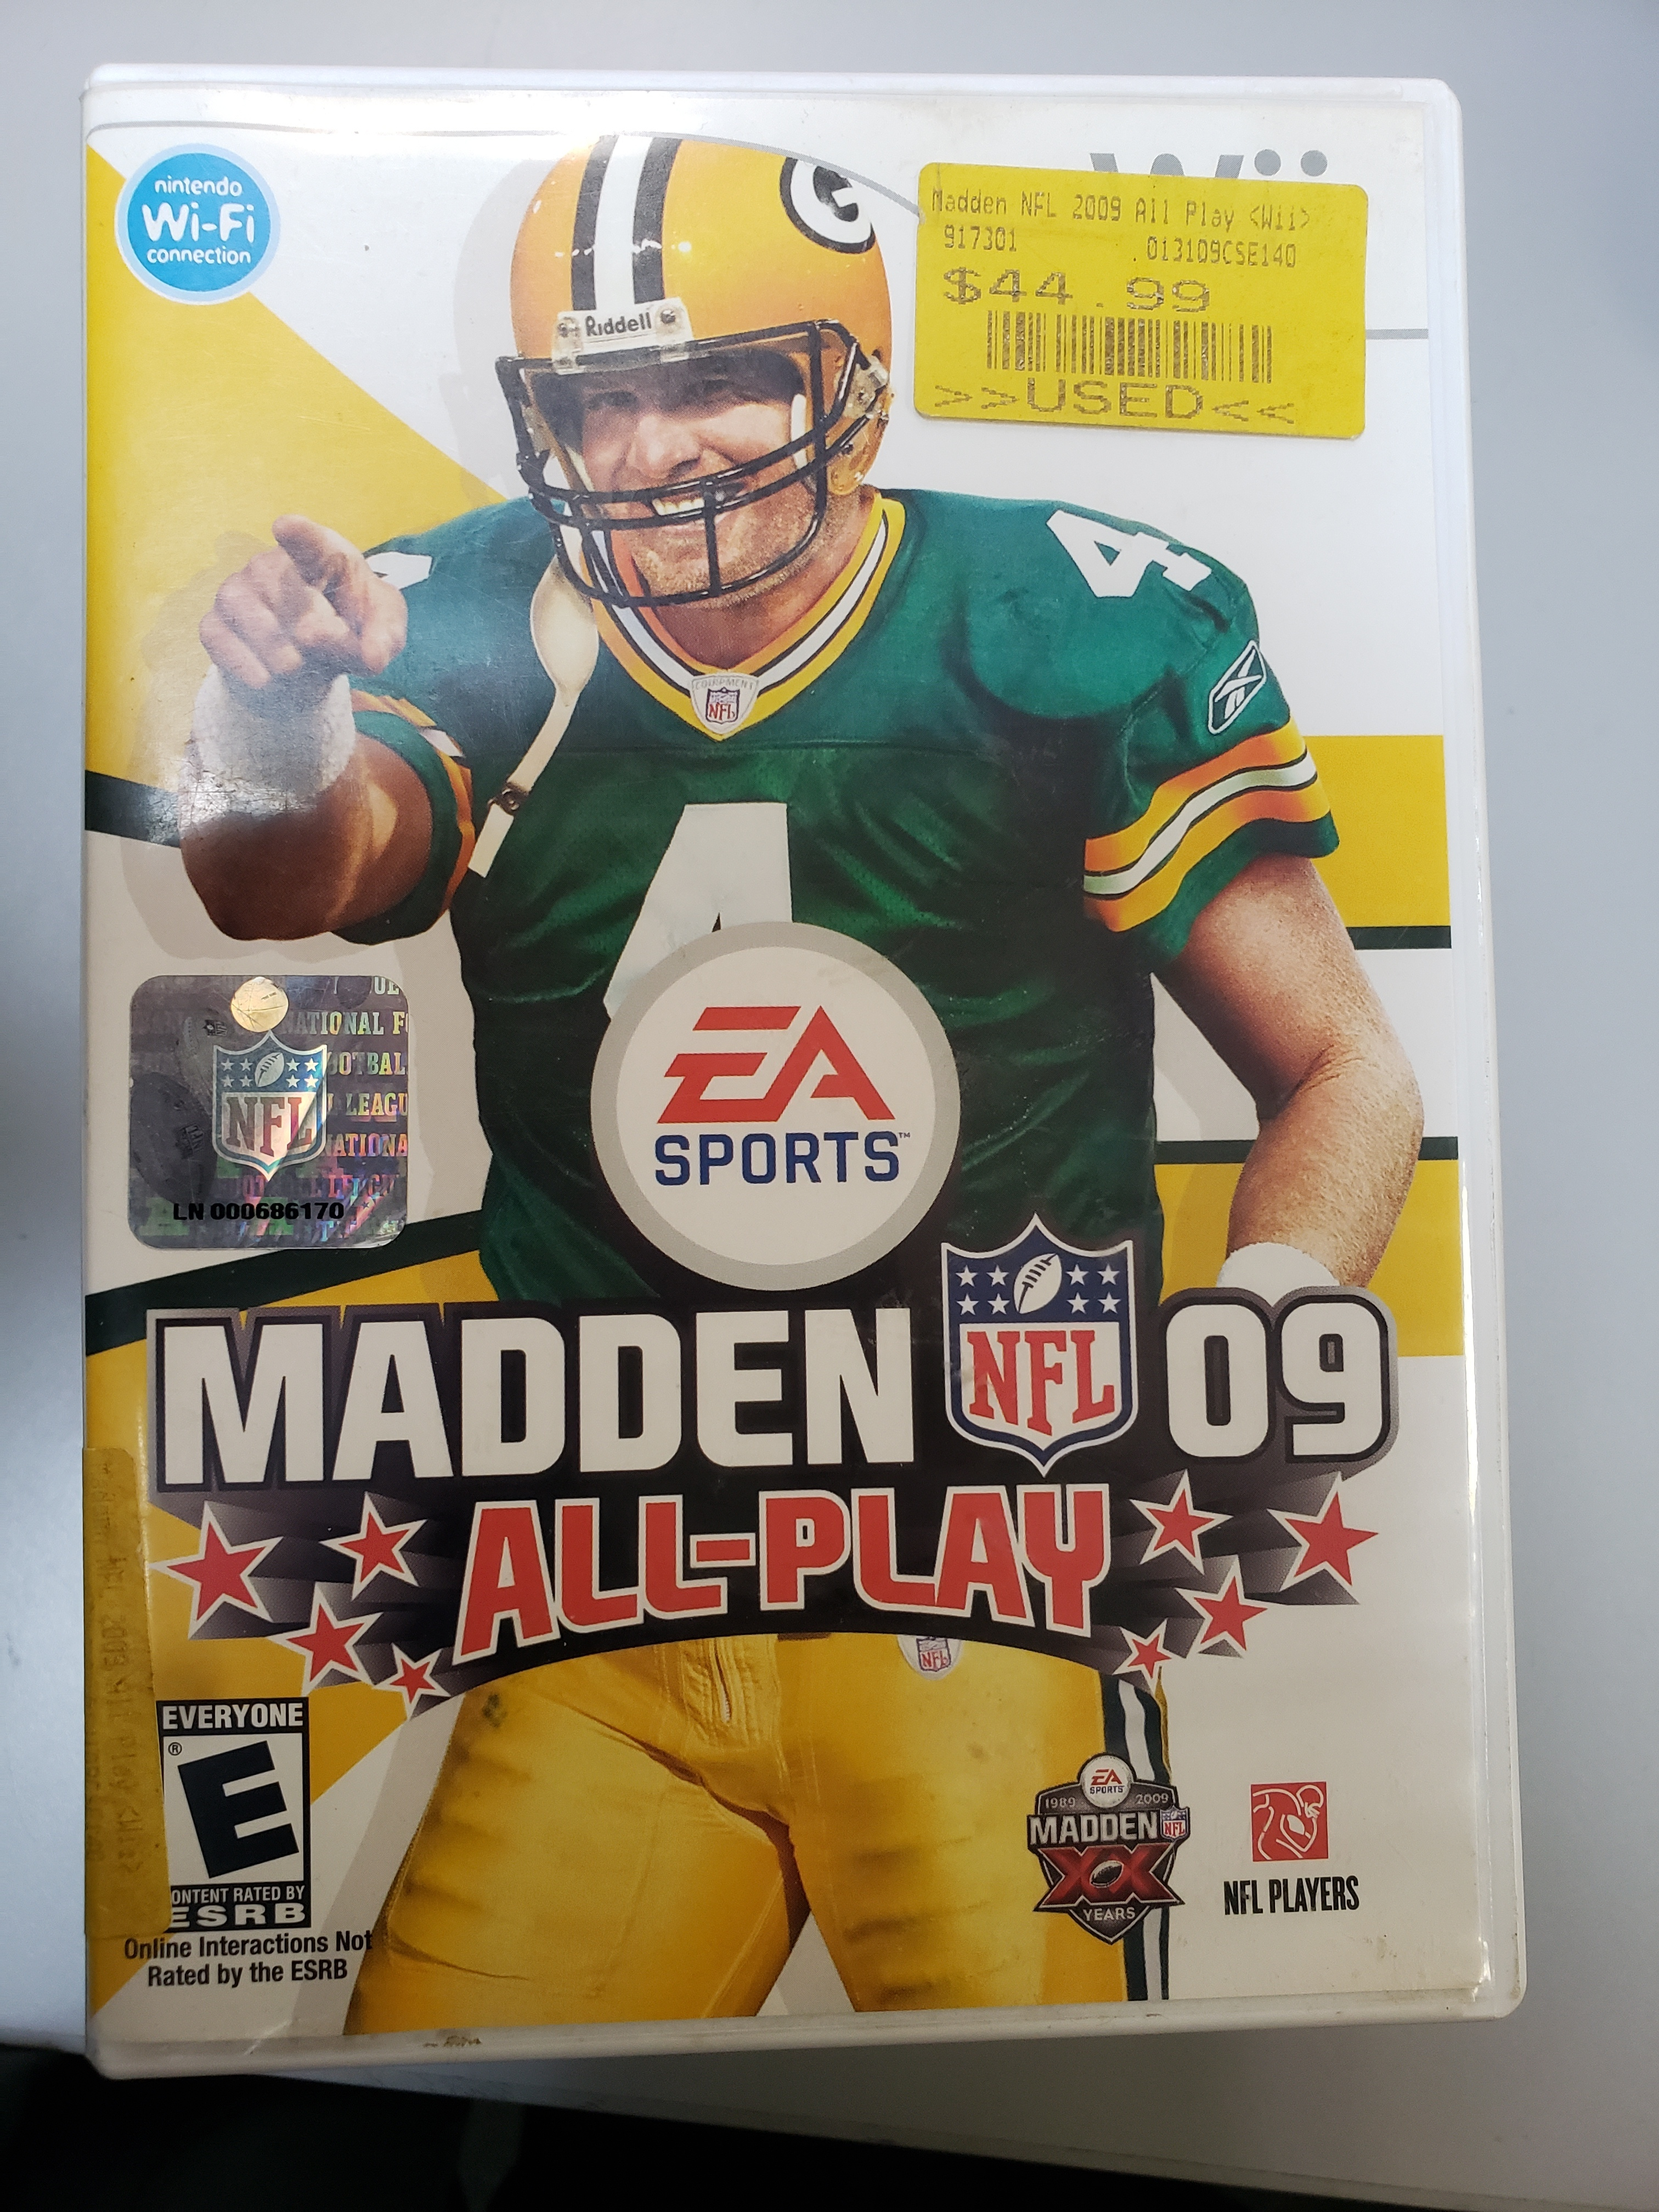 MADDEN NFL 09 ALL-PLAY - WII GAME